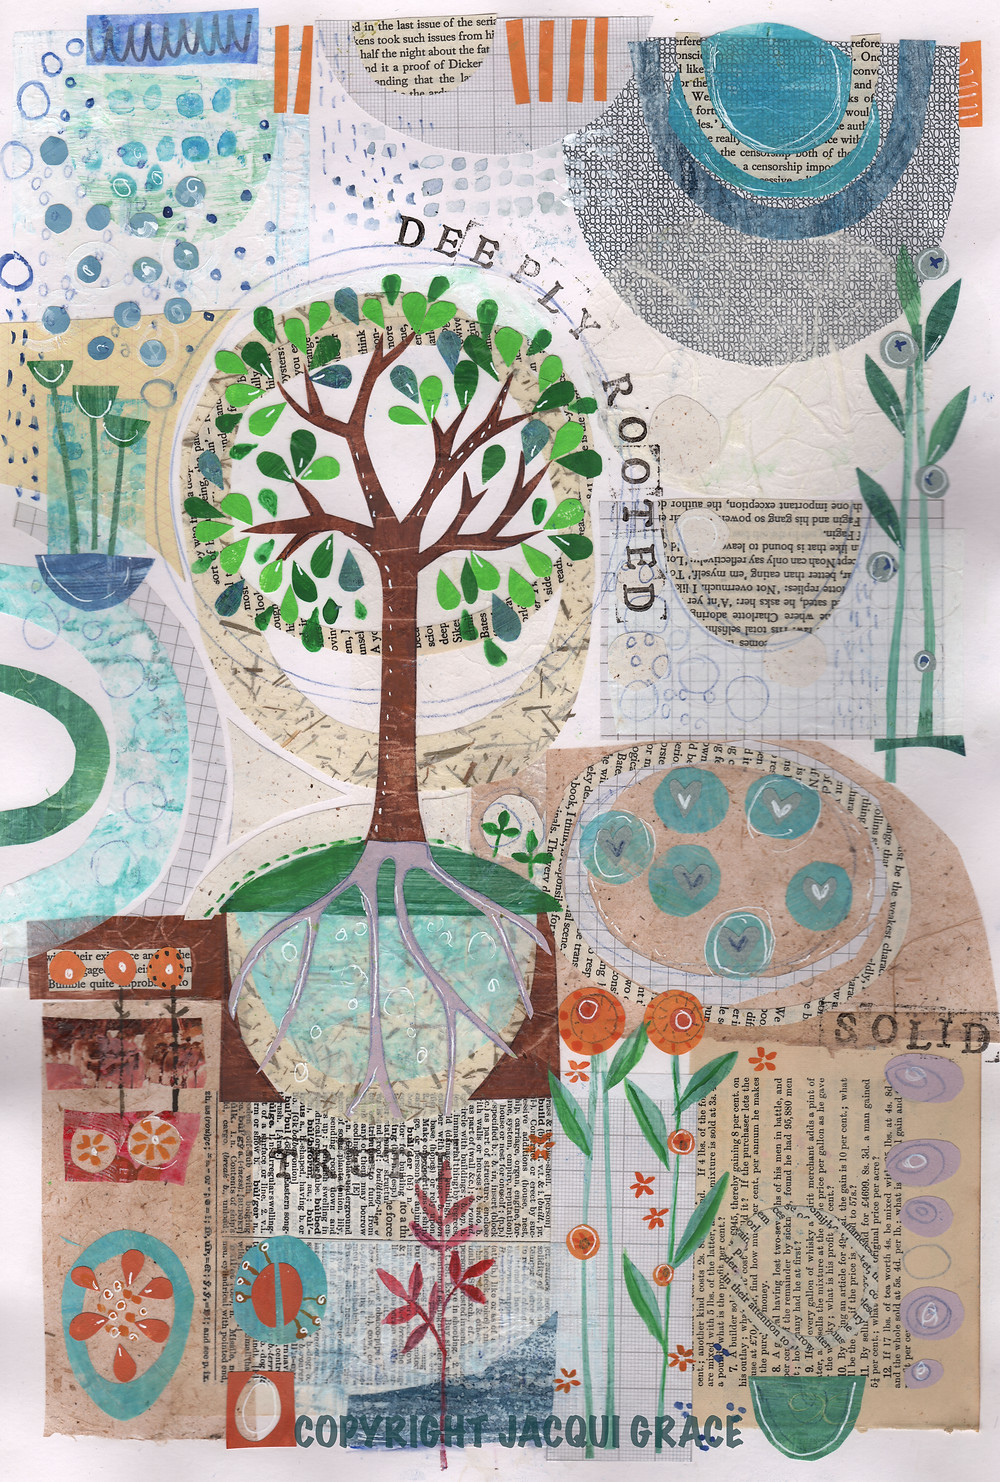 """Deeply rooted"" a mixed media collage based on Colossians 2v6"